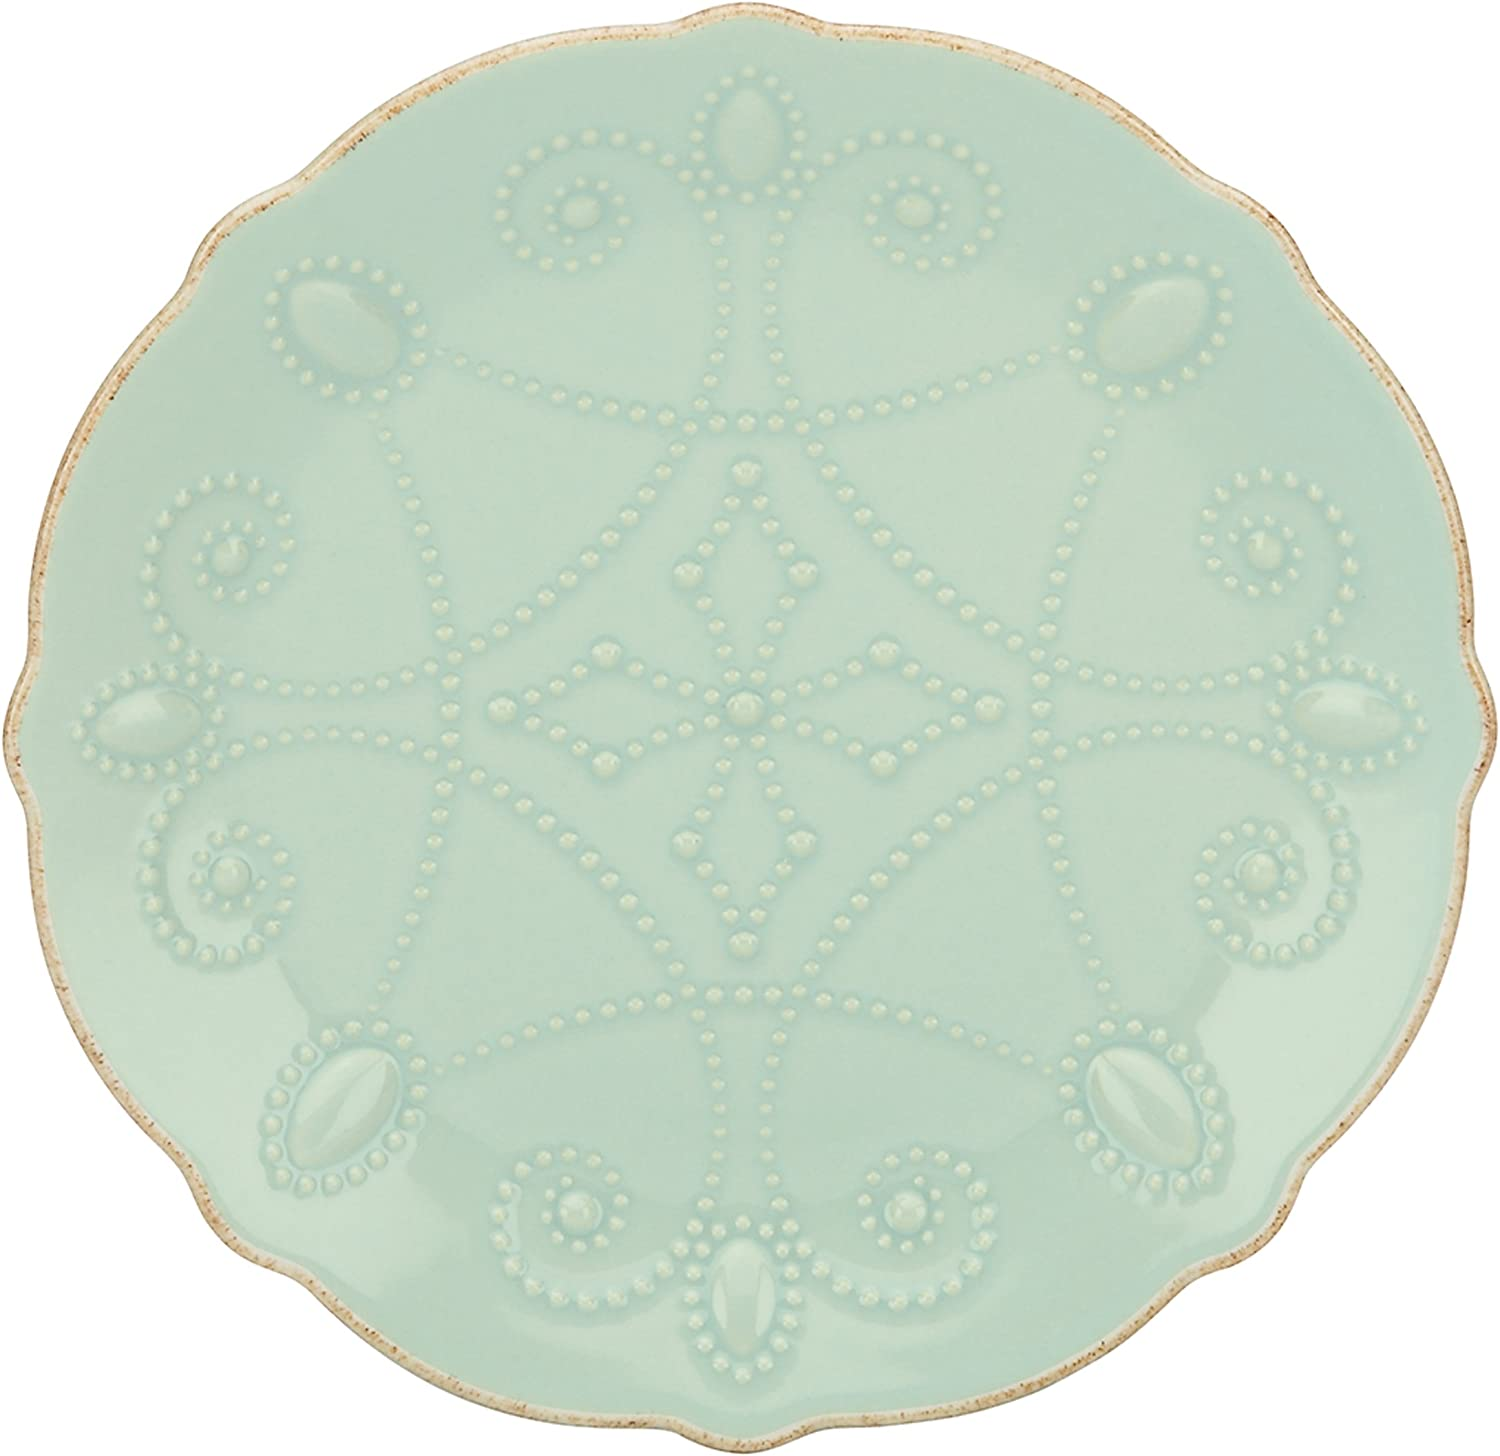 Lenox French Perle Assorted Plates, 7.5-Inch, Ice bluee, Set of 4